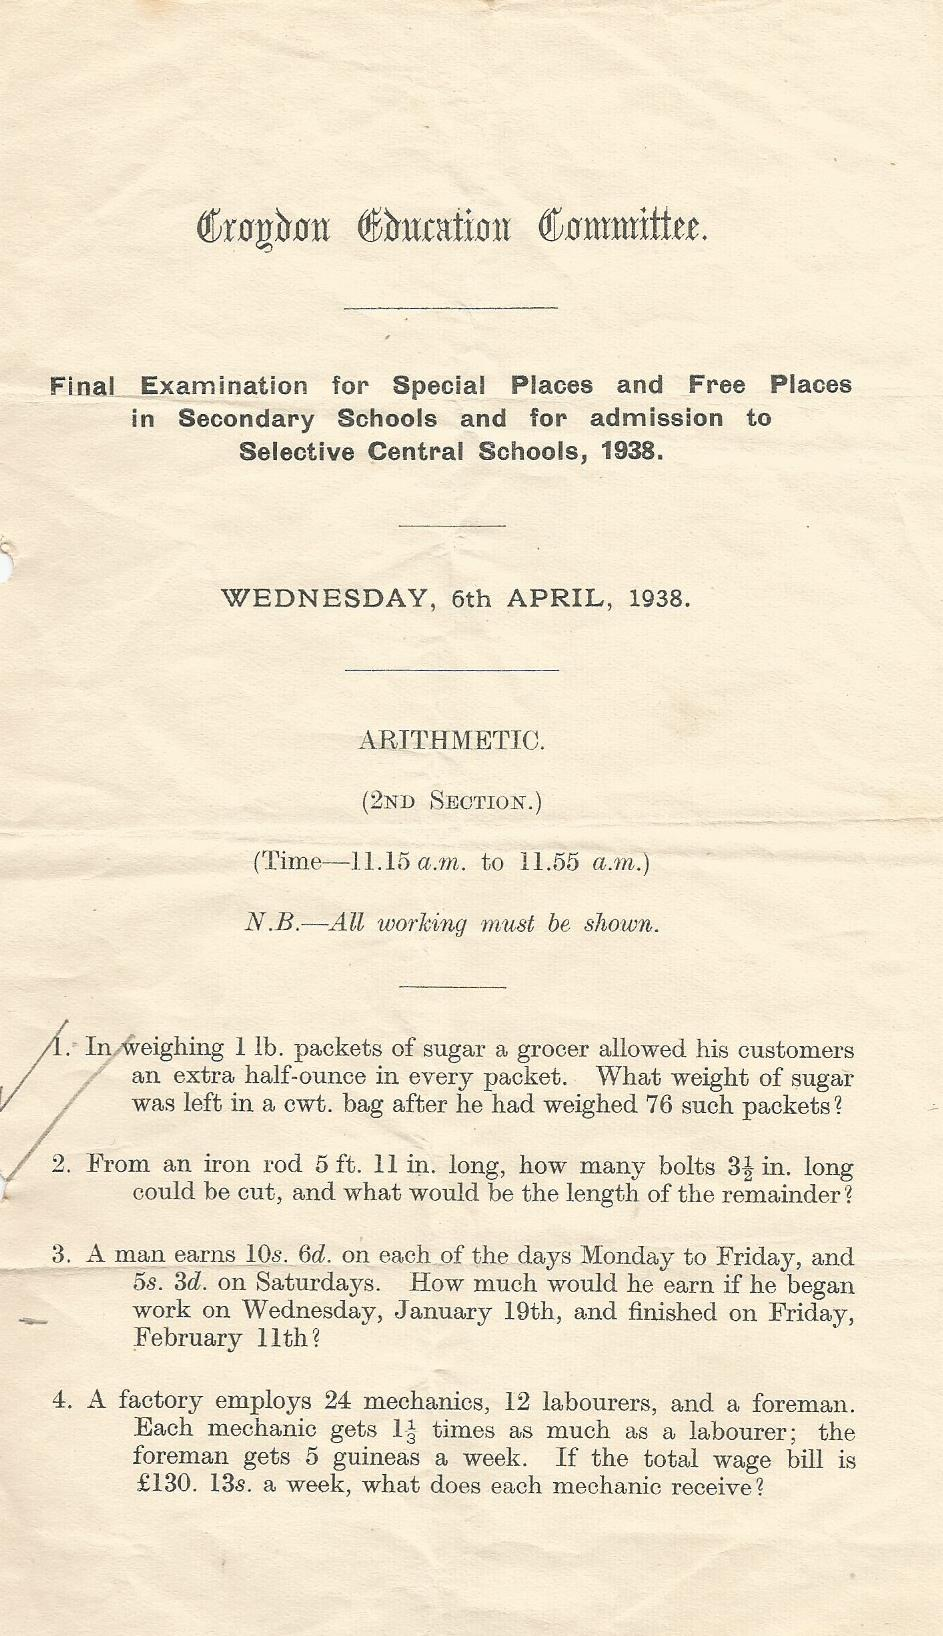 final entrance exam 6.4.1938 arithmetic section 2